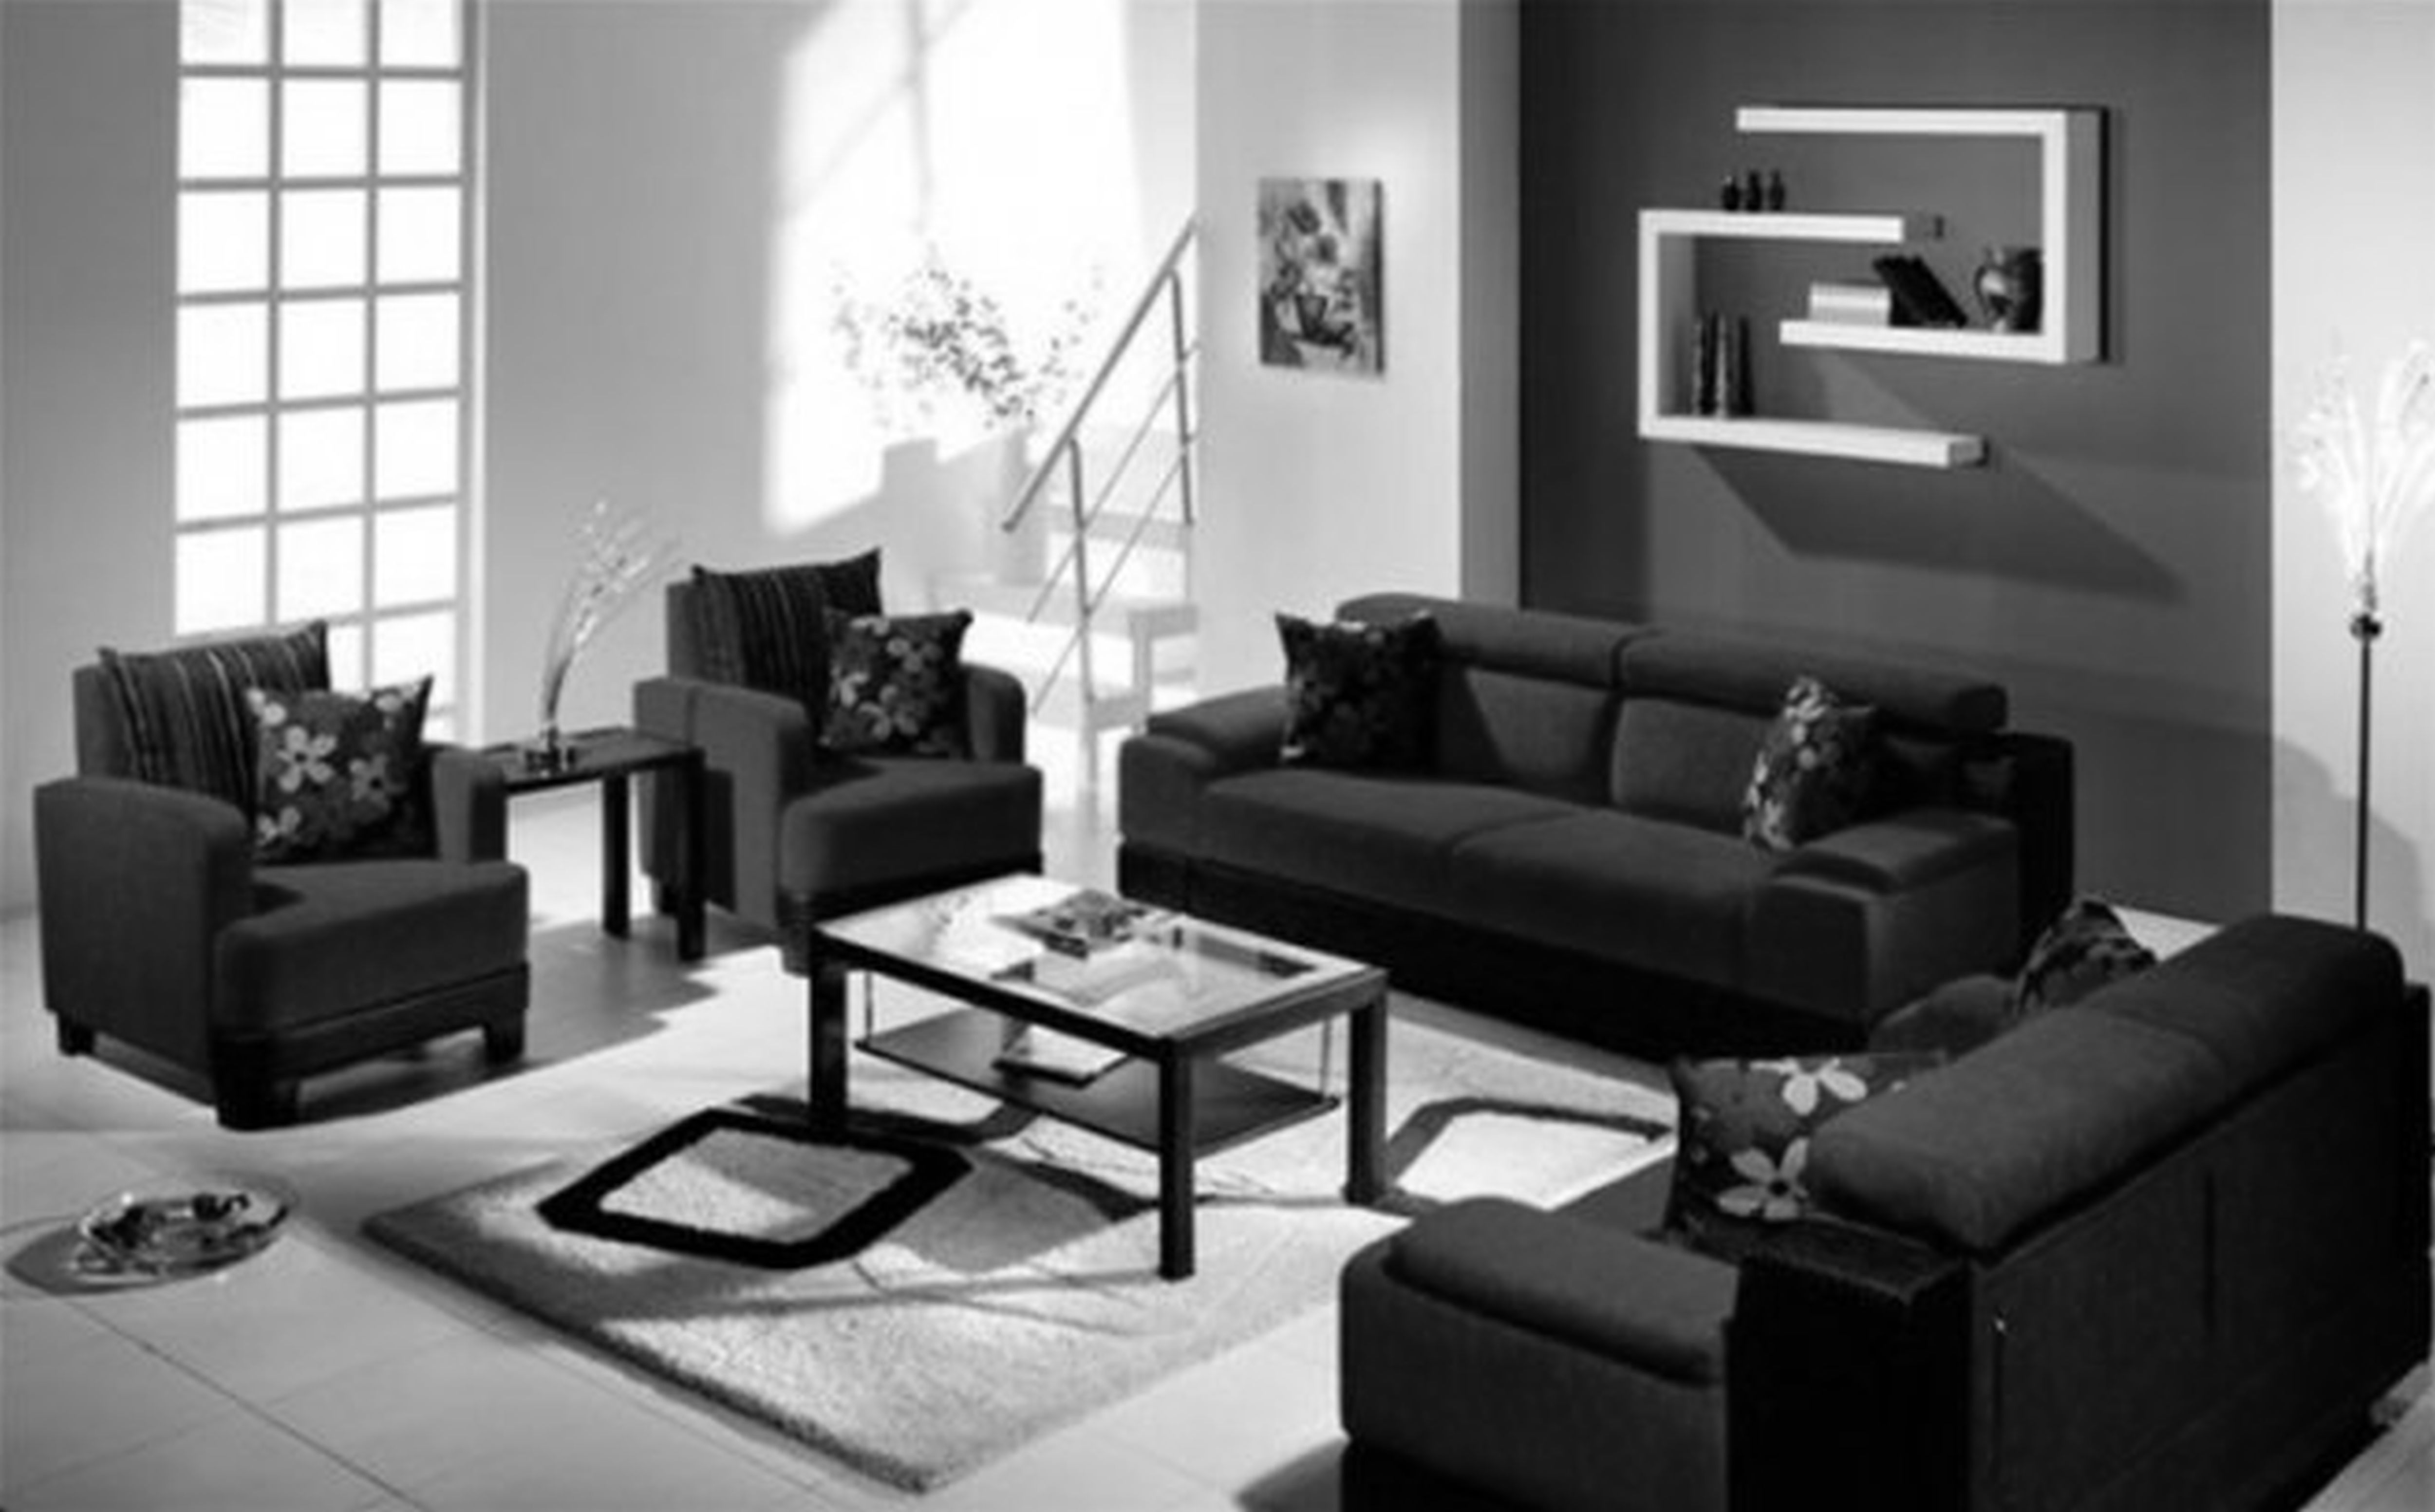 Splendid Apartment Living Room Decorating Ideas With Wonderful Black All Bedroom Atmosphere Kitchen Small Modern Bathroom Cute Rooms Apppie Org